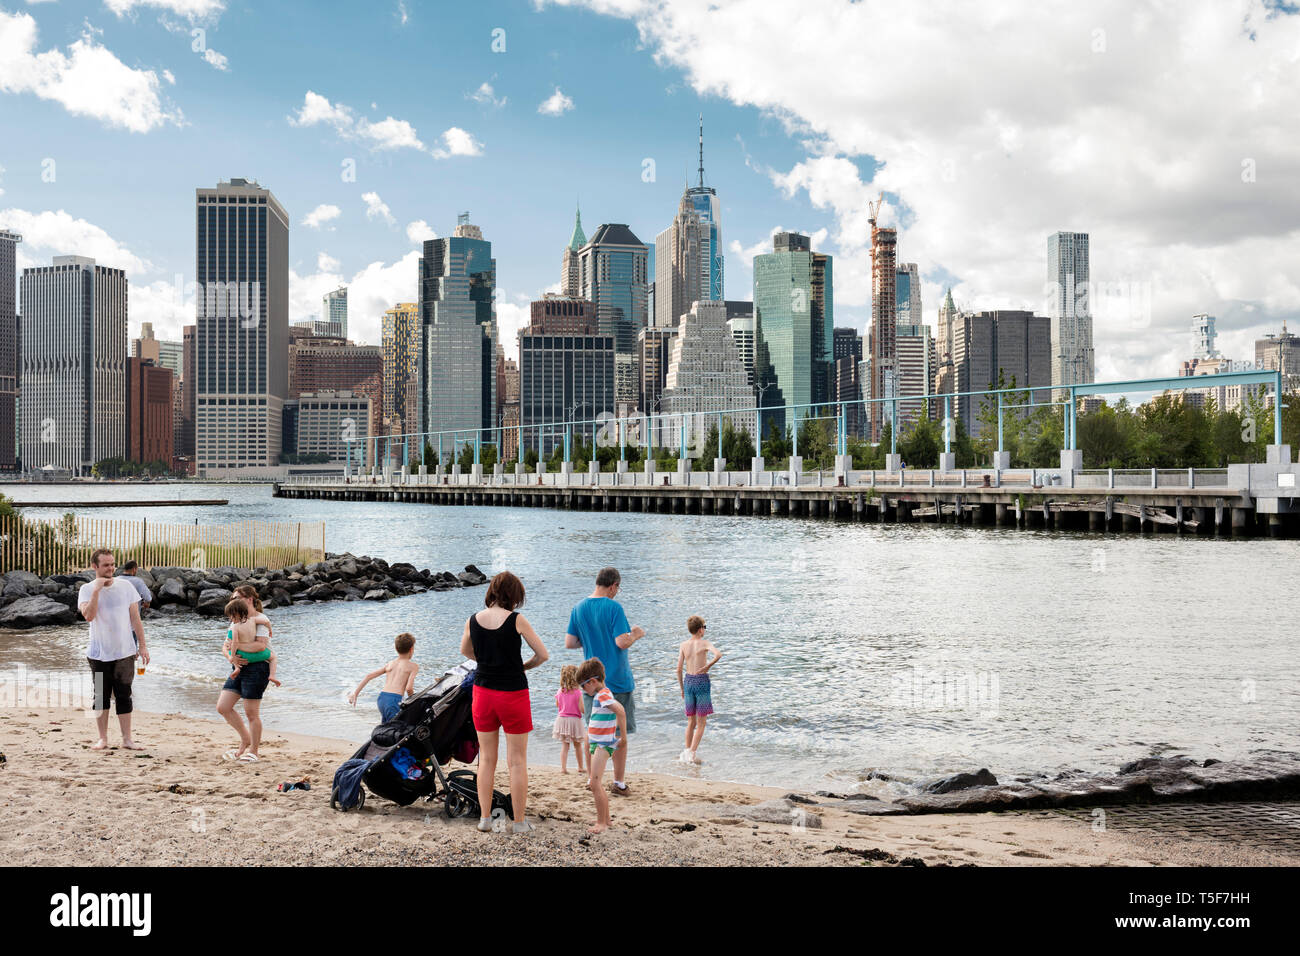 East River Beach in Ponte di Brooklyn Park, Pier 3 e la parte inferiore dello skyline di Manhattan in background. Ponte di Brooklyn Park Pier 3, Brooklyn, Regno Stat Foto Stock